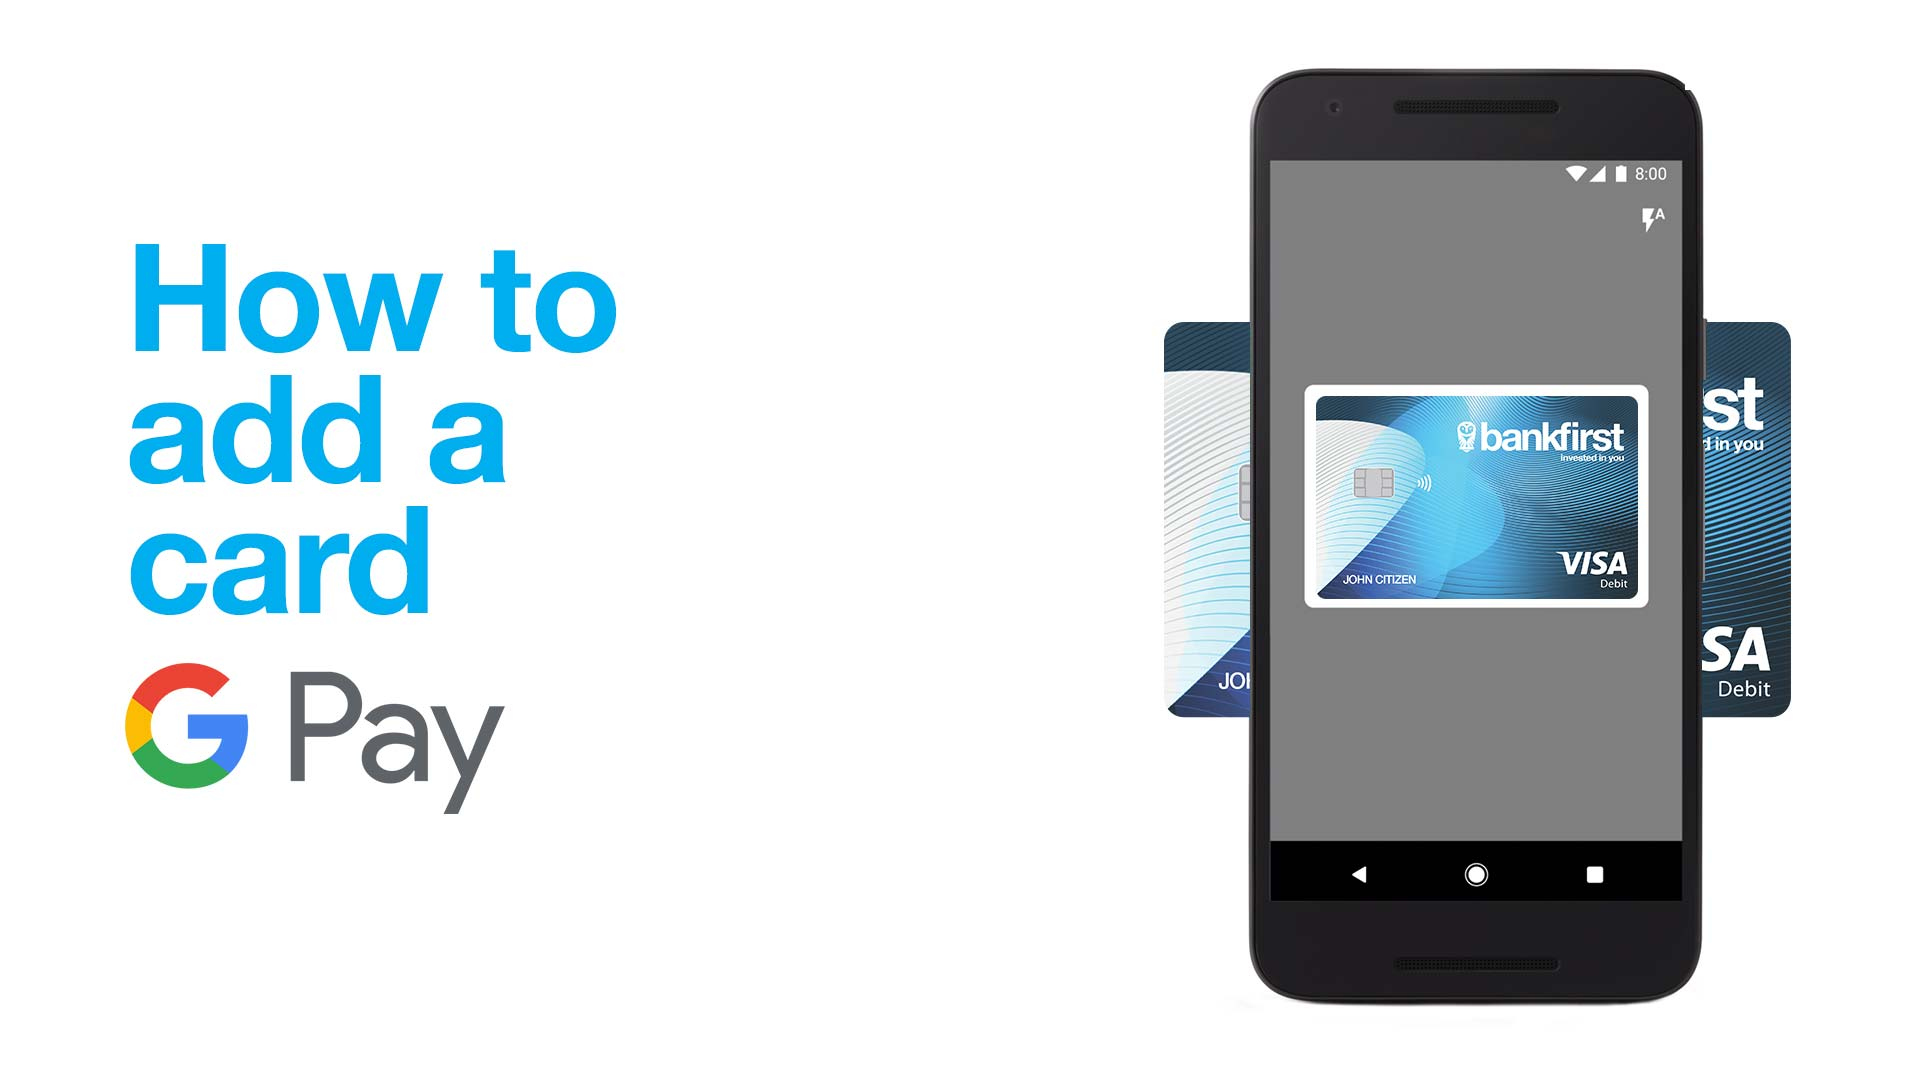 How to add a card to Google Pay